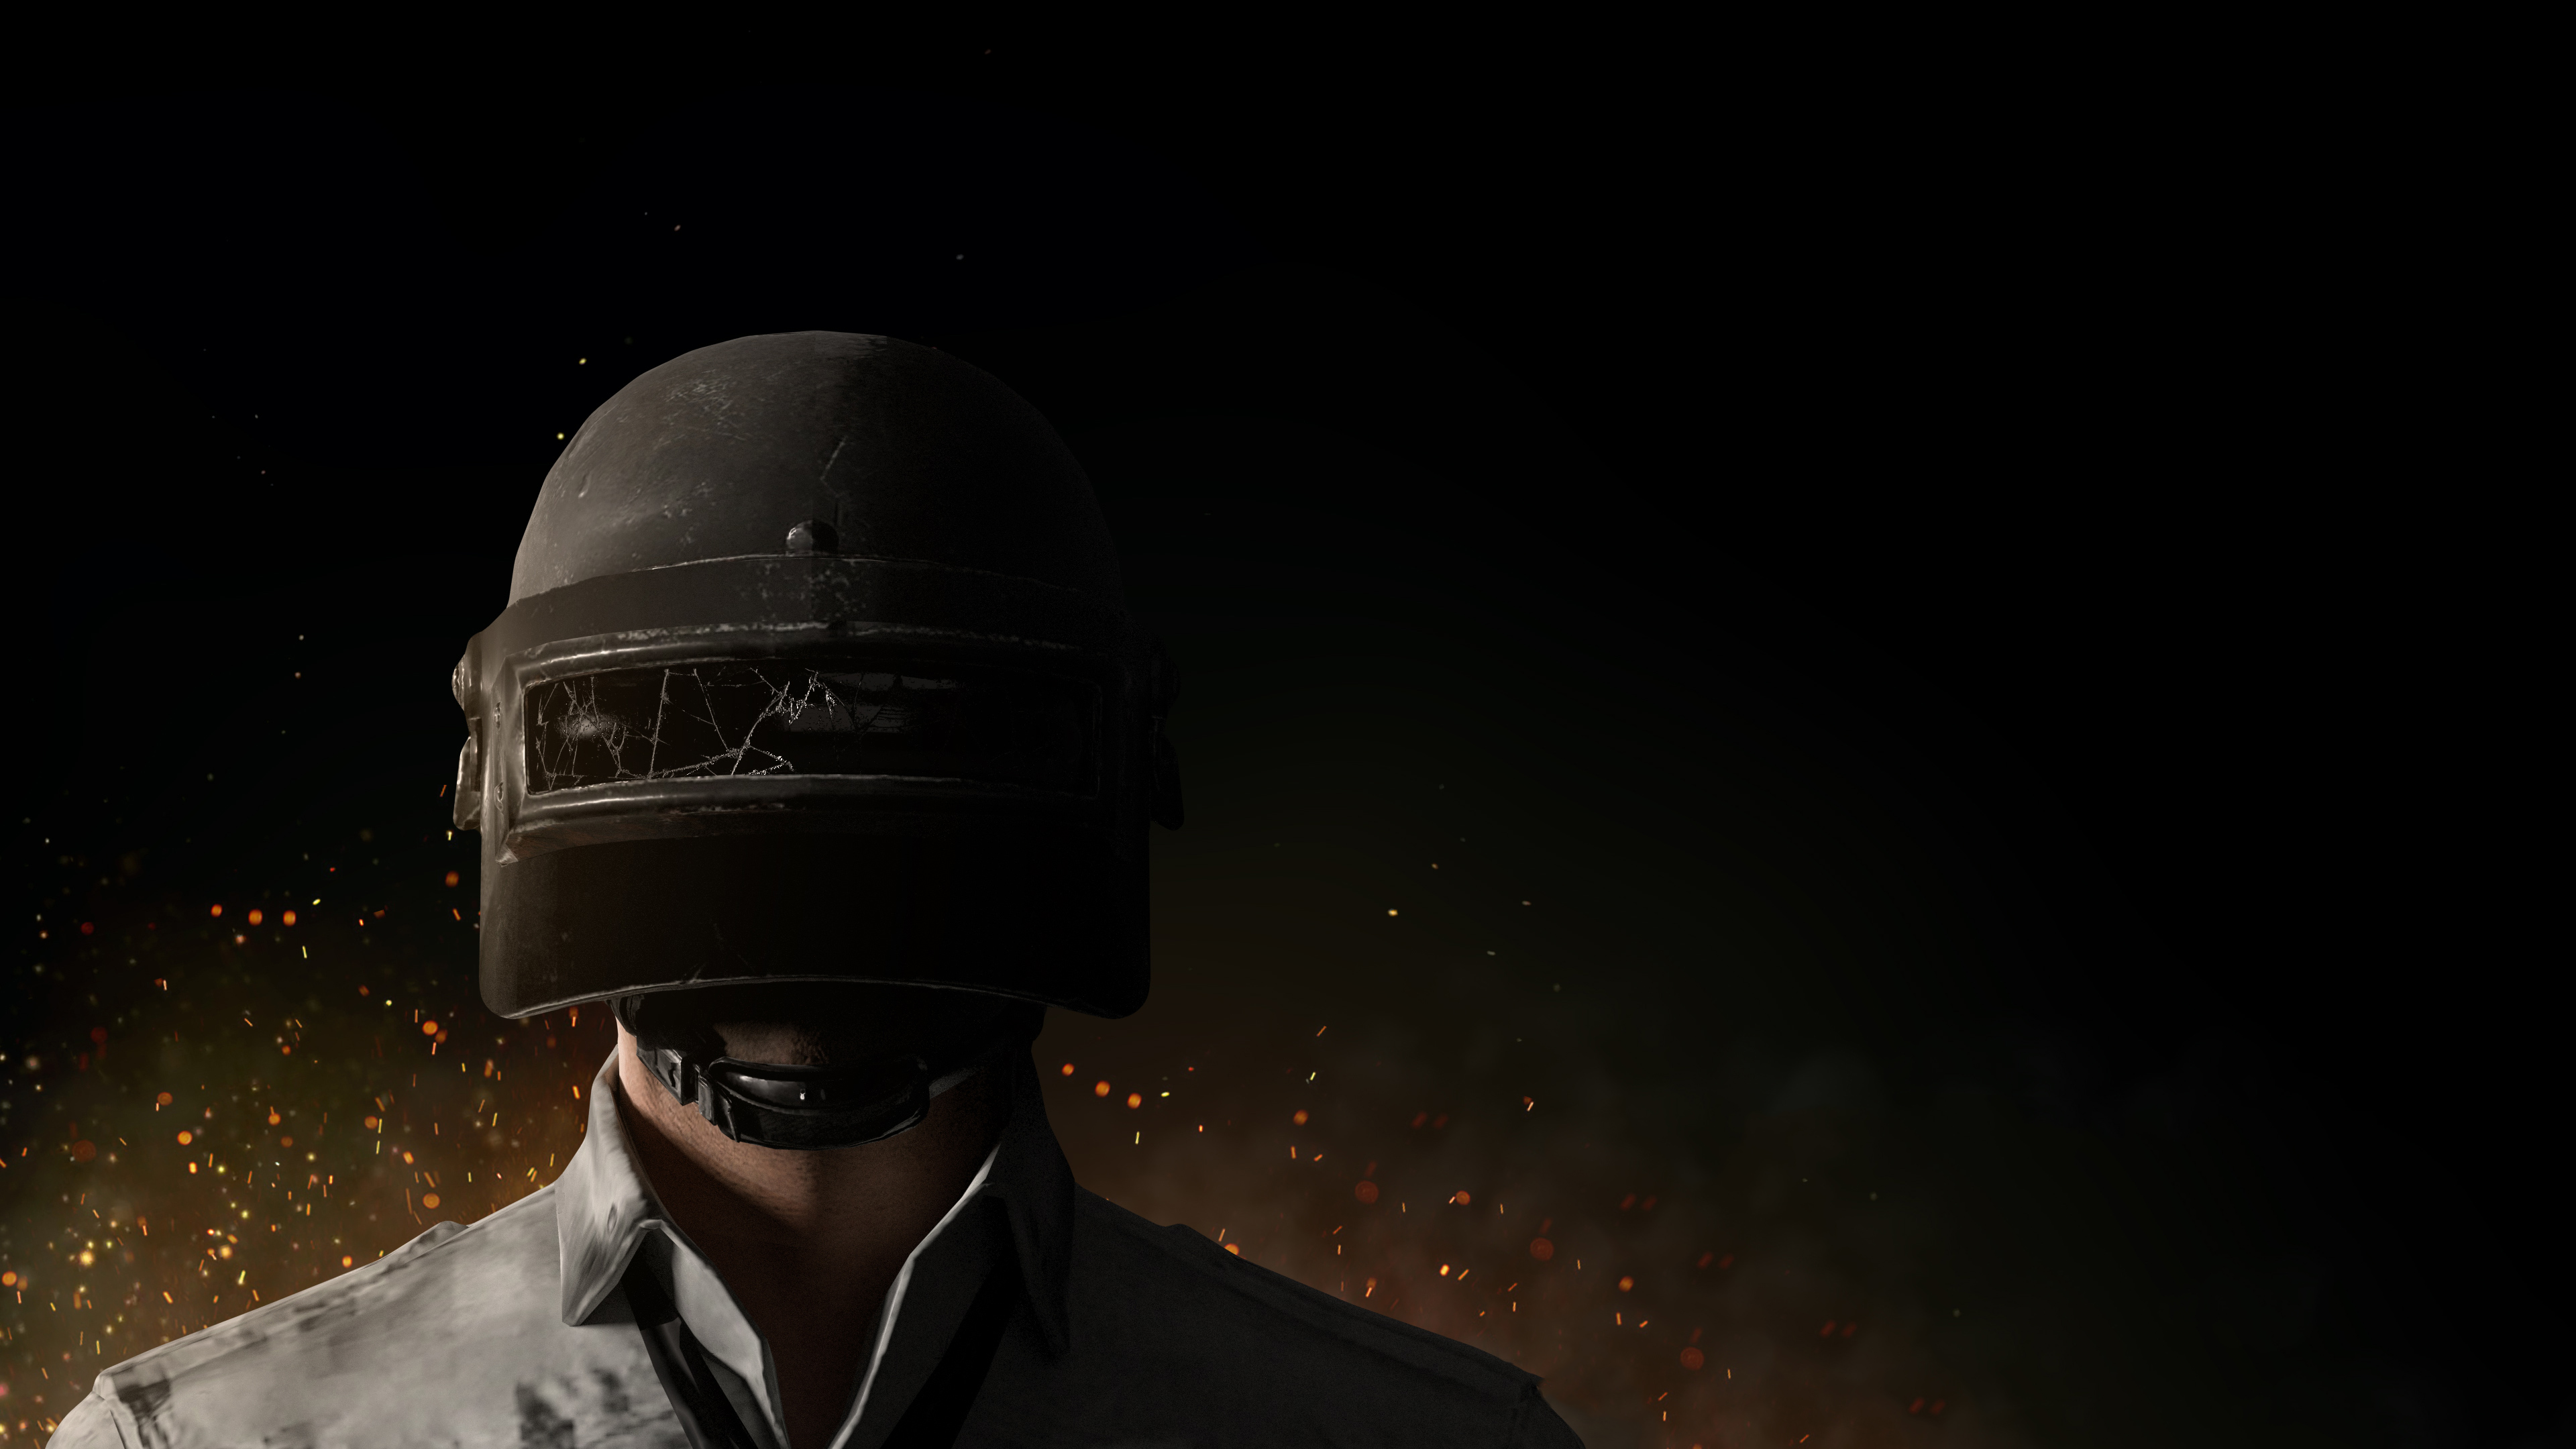 2048x1152 Pubg Game Girl Fanart 2048x1152 Resolution Hd 4k: PUBG Helmet Guy 4k, HD Games, 4k Wallpapers, Images